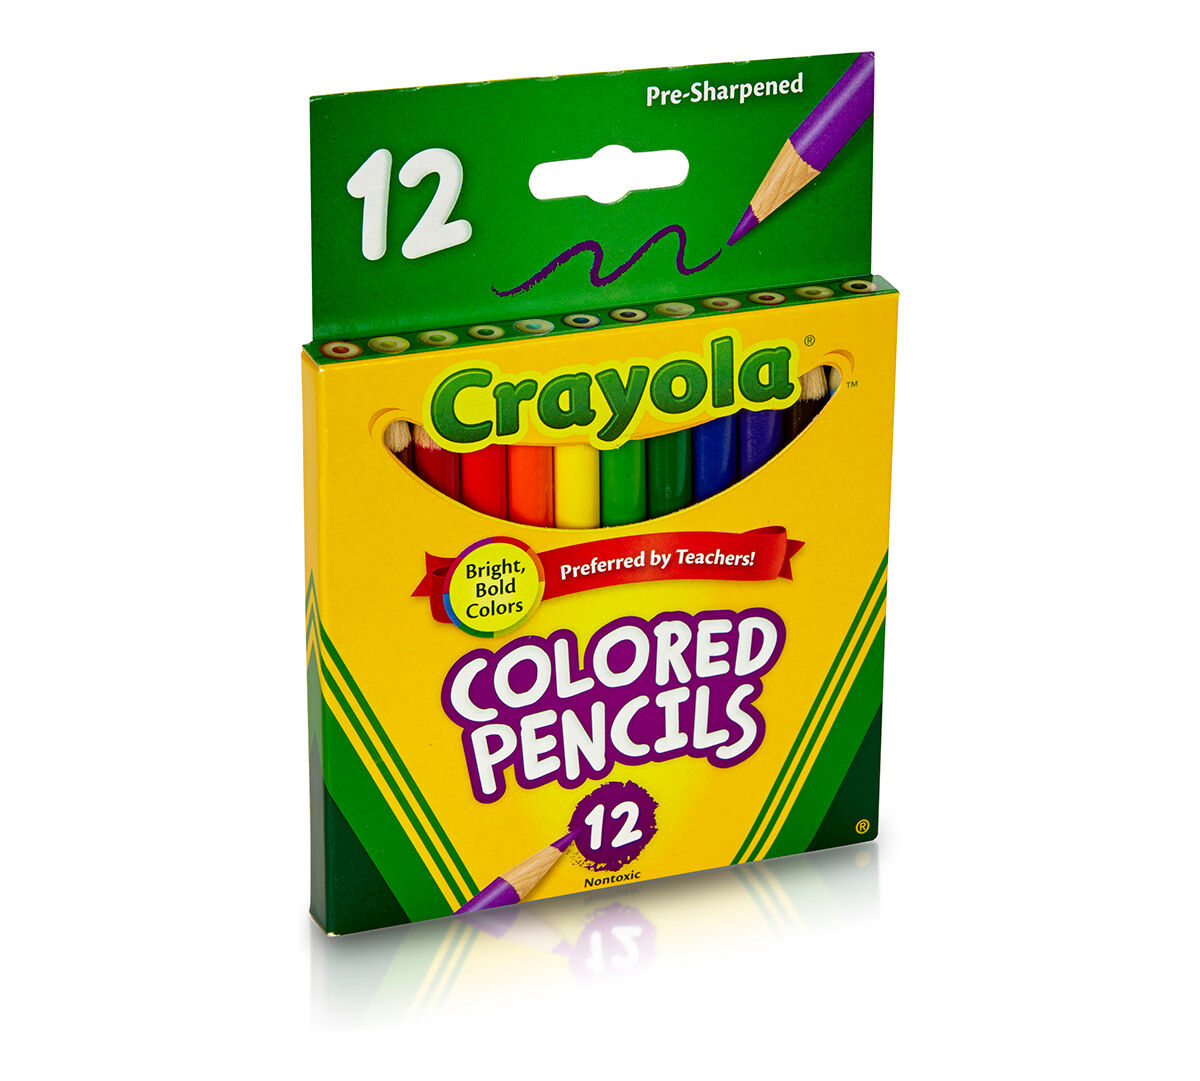 Crayola Colored Pencils - Shop Colored Pencils | Crayola